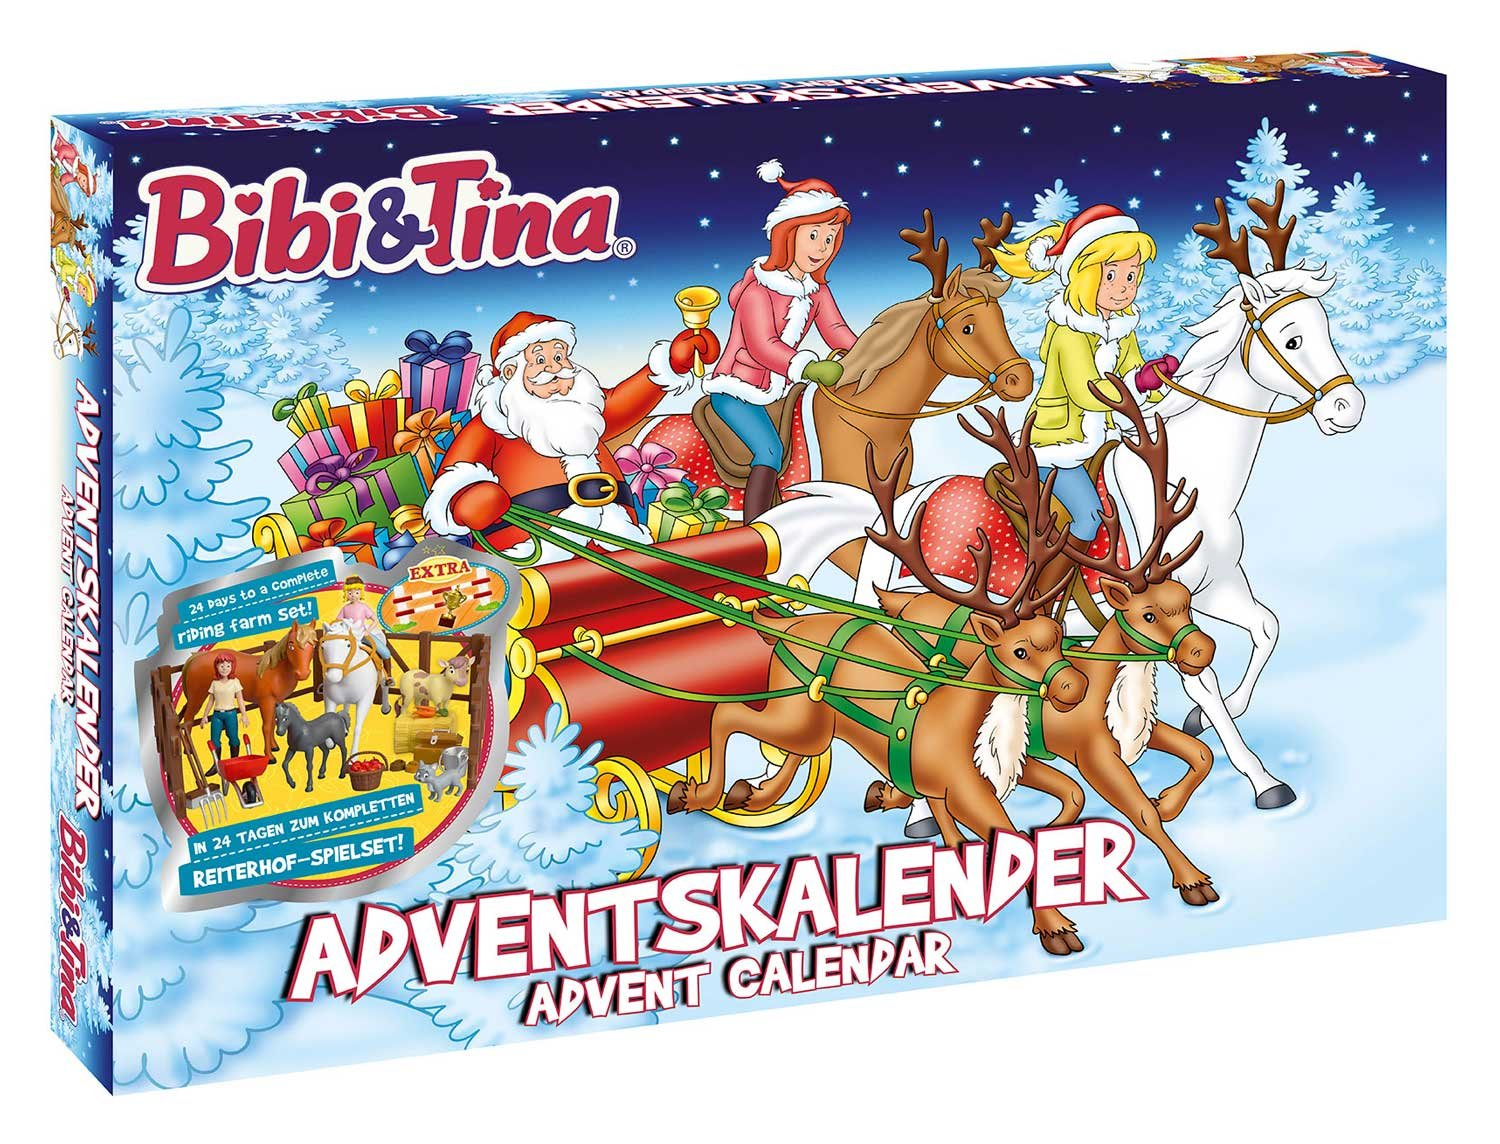 Craze 57460 - Adventskalender Bibi und Tina Craze_57460